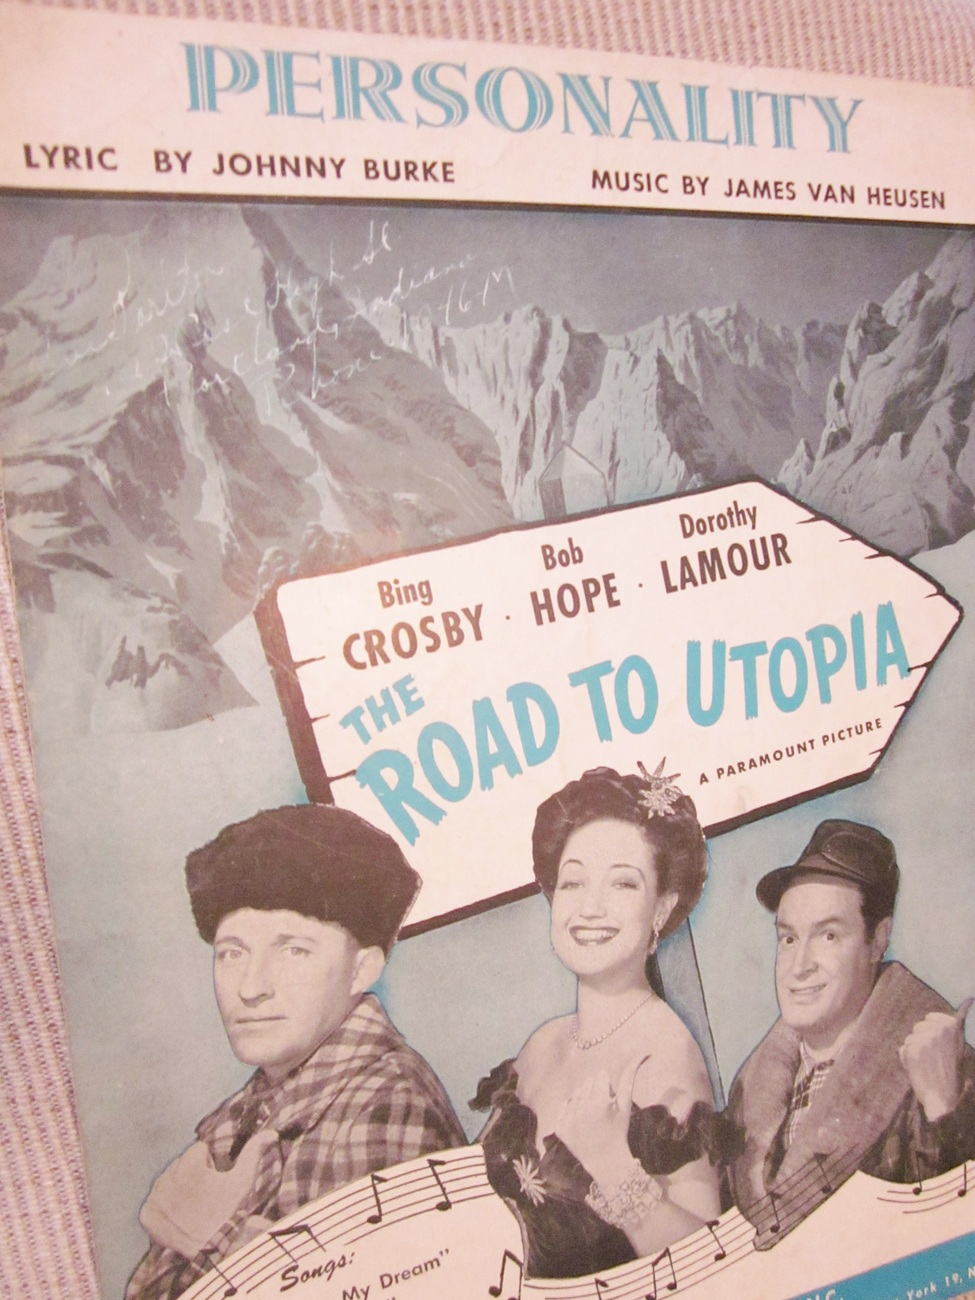 Sheet Music Personality from Road to Utopia with Crosby, Hope, Lamour 1945